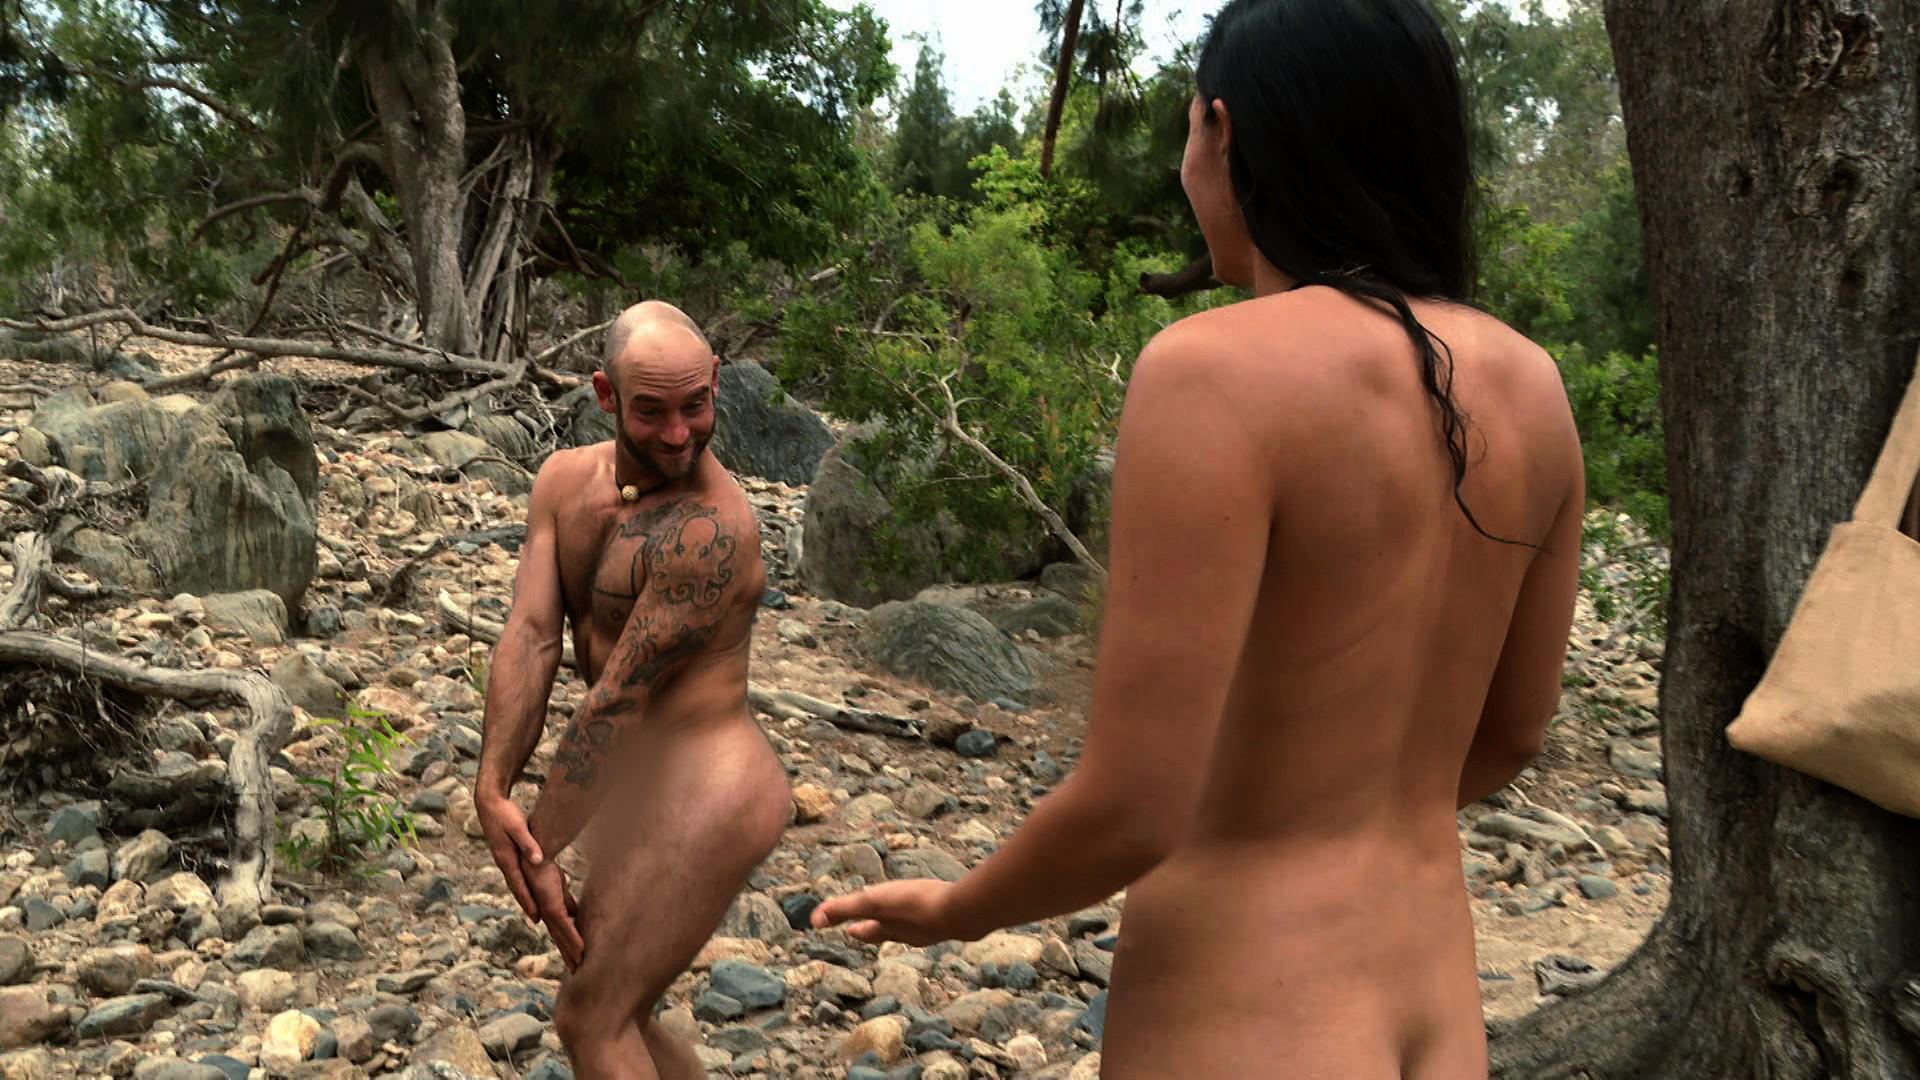 Variant Uncensored discovery channel naked talented